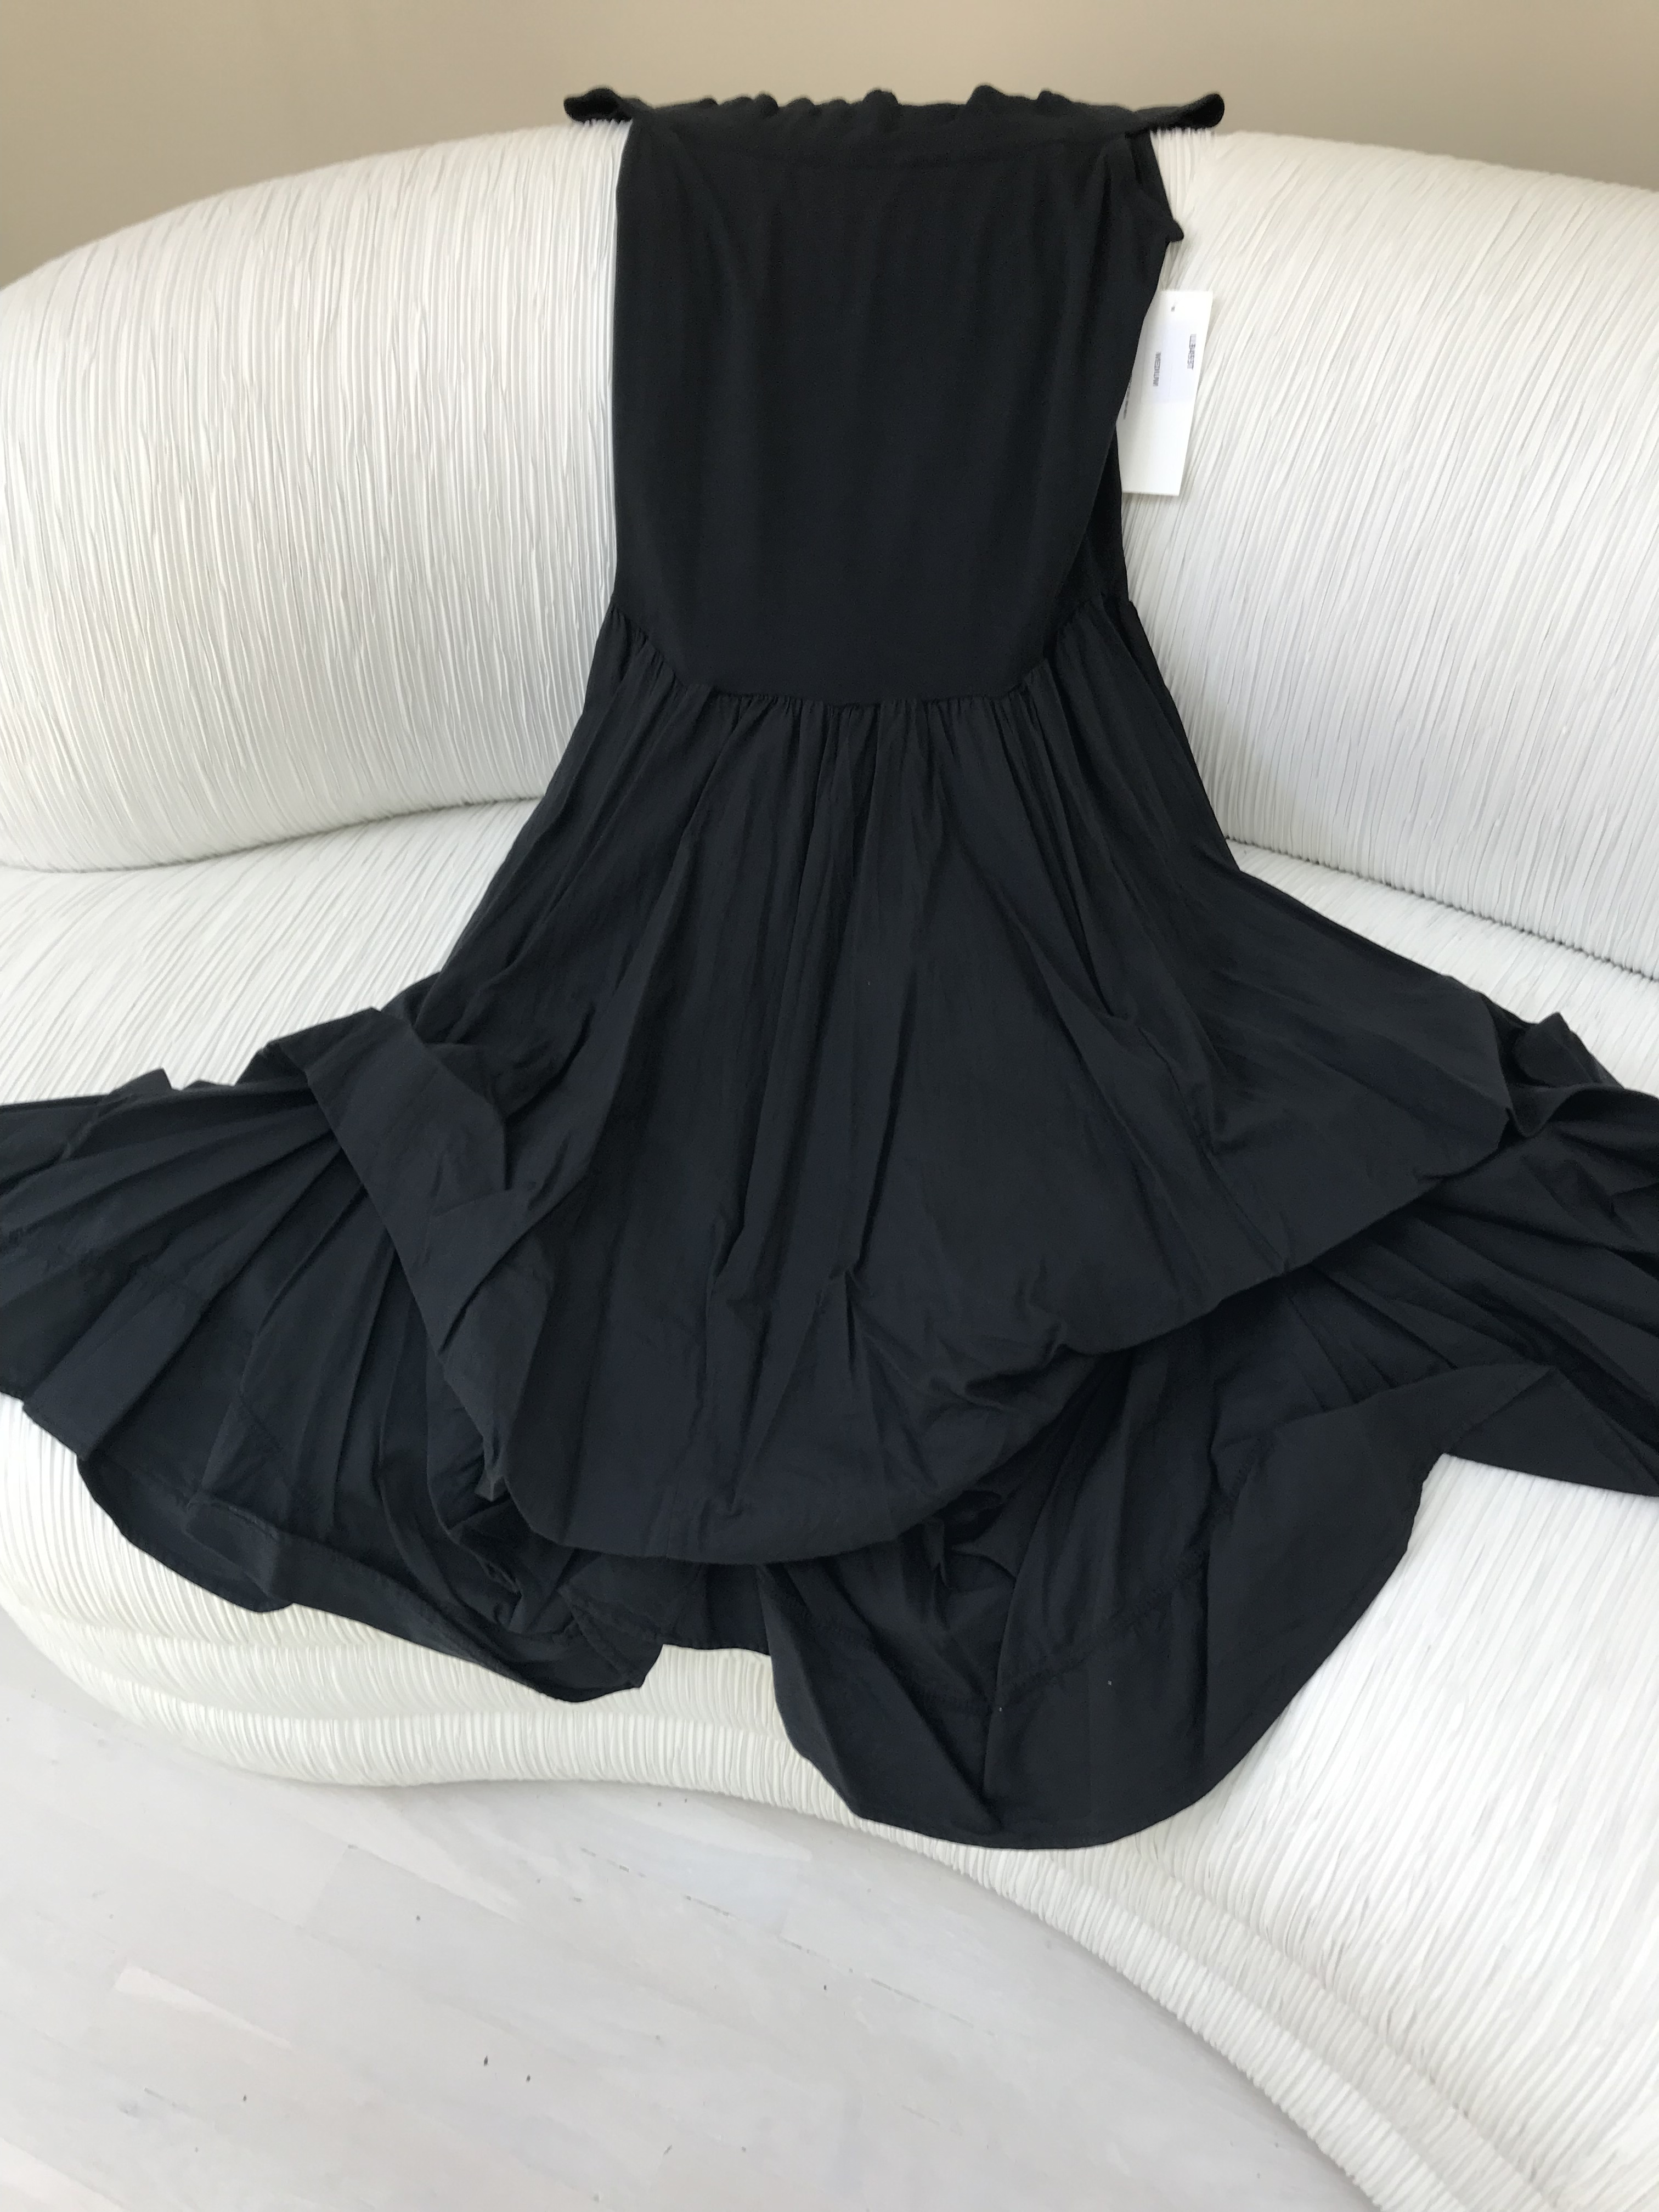 Luna Luz: Sleeveless Tied and Dyed Dress (Ships Immed, 1 Left in Black!) LL_493T_BLACK